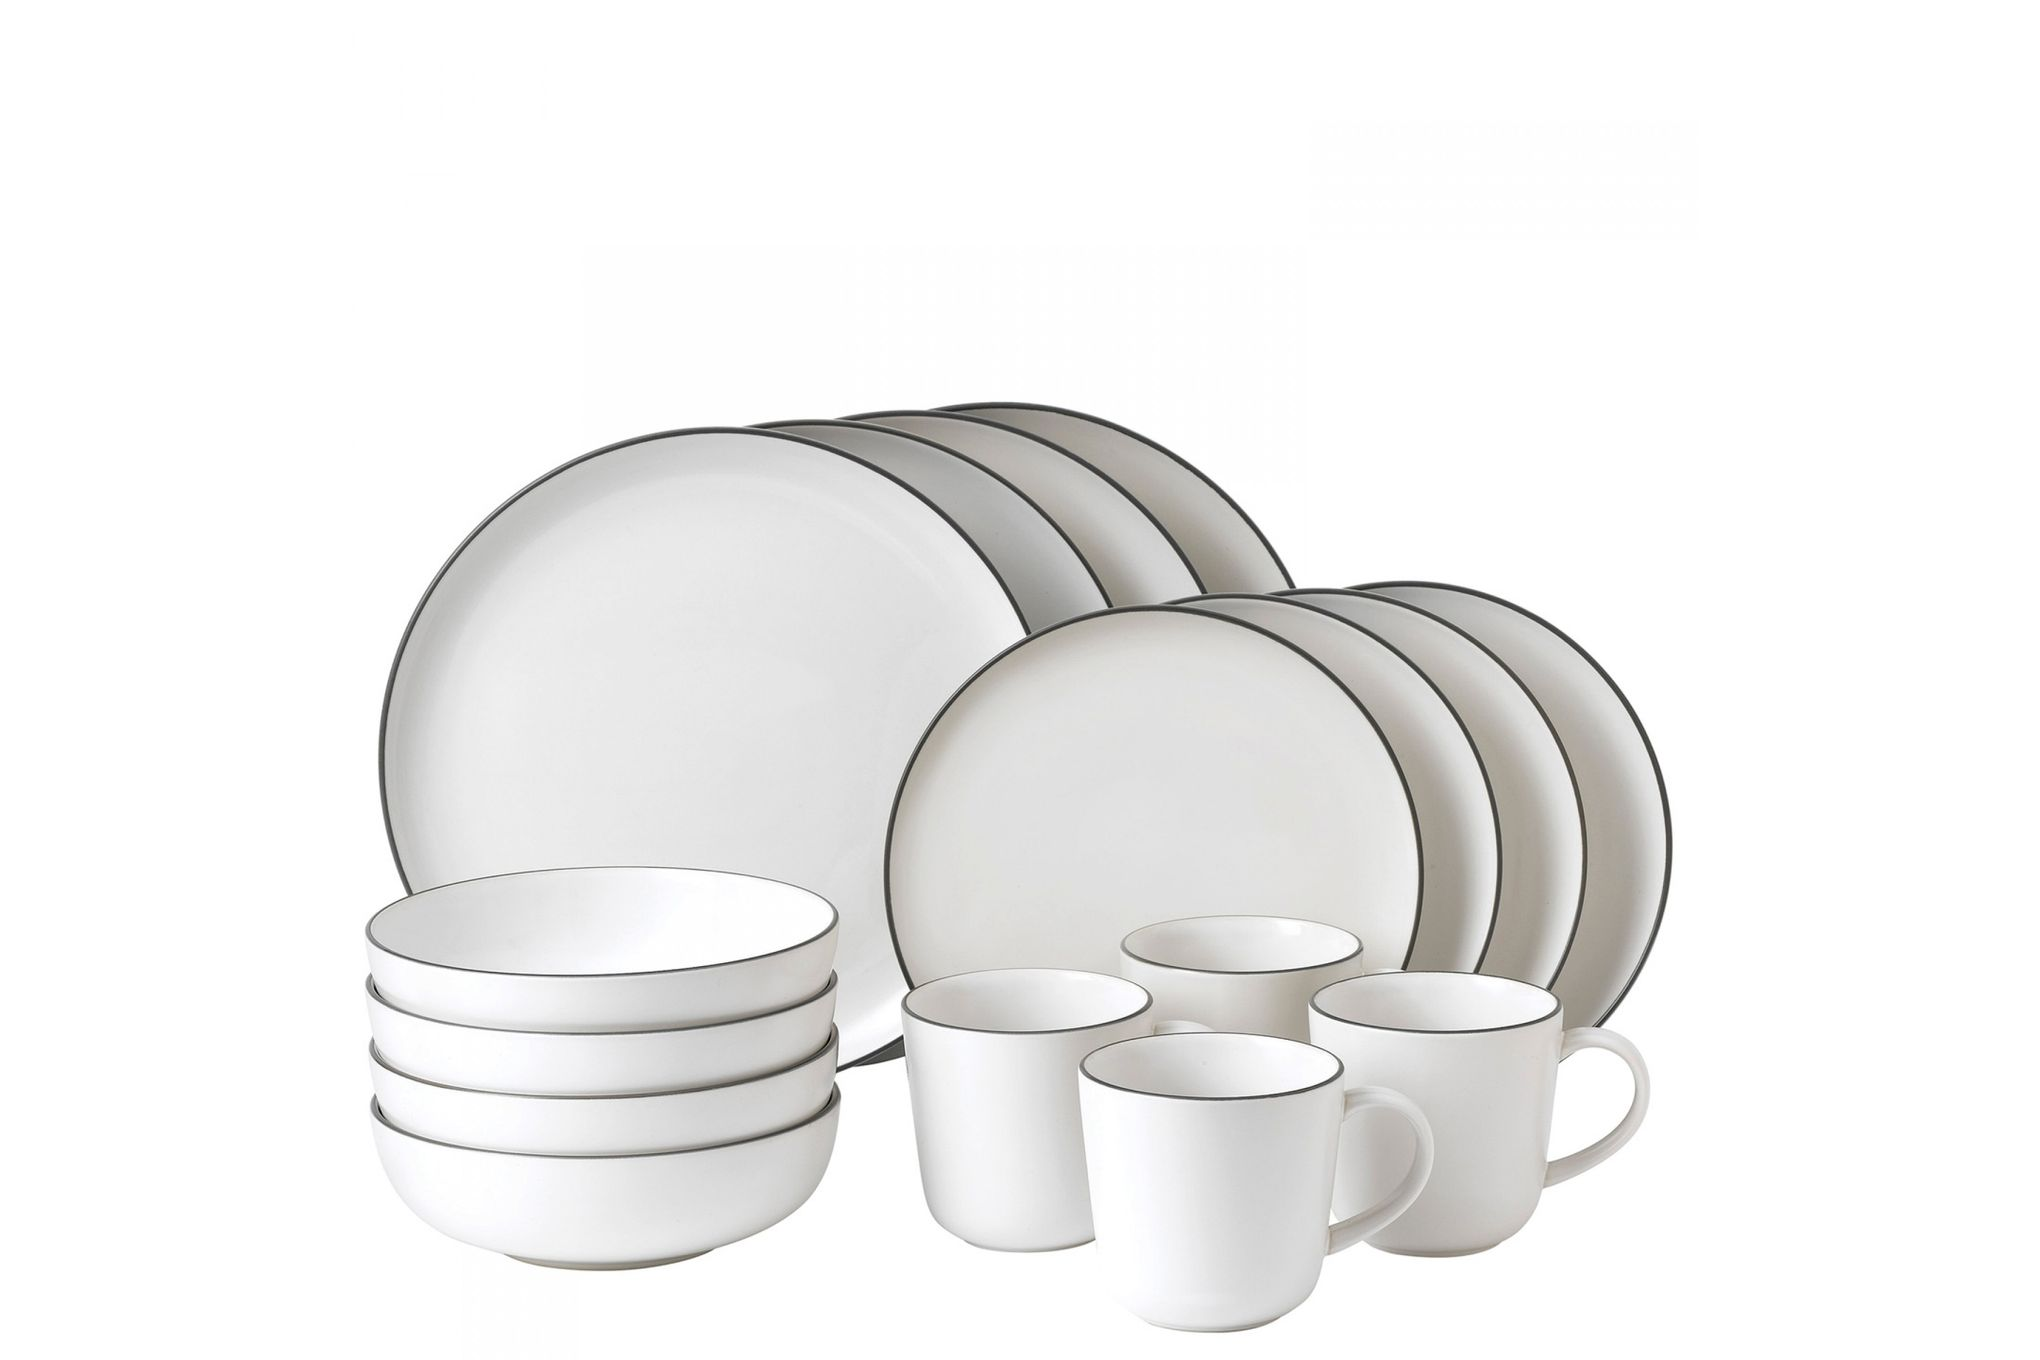 Gordon Ramsay for Royal Doulton Bread Street White 16 Piece Set 4 x Plate 28cm, Plate 22cm, Bowl 18cm, Mug thumb 1